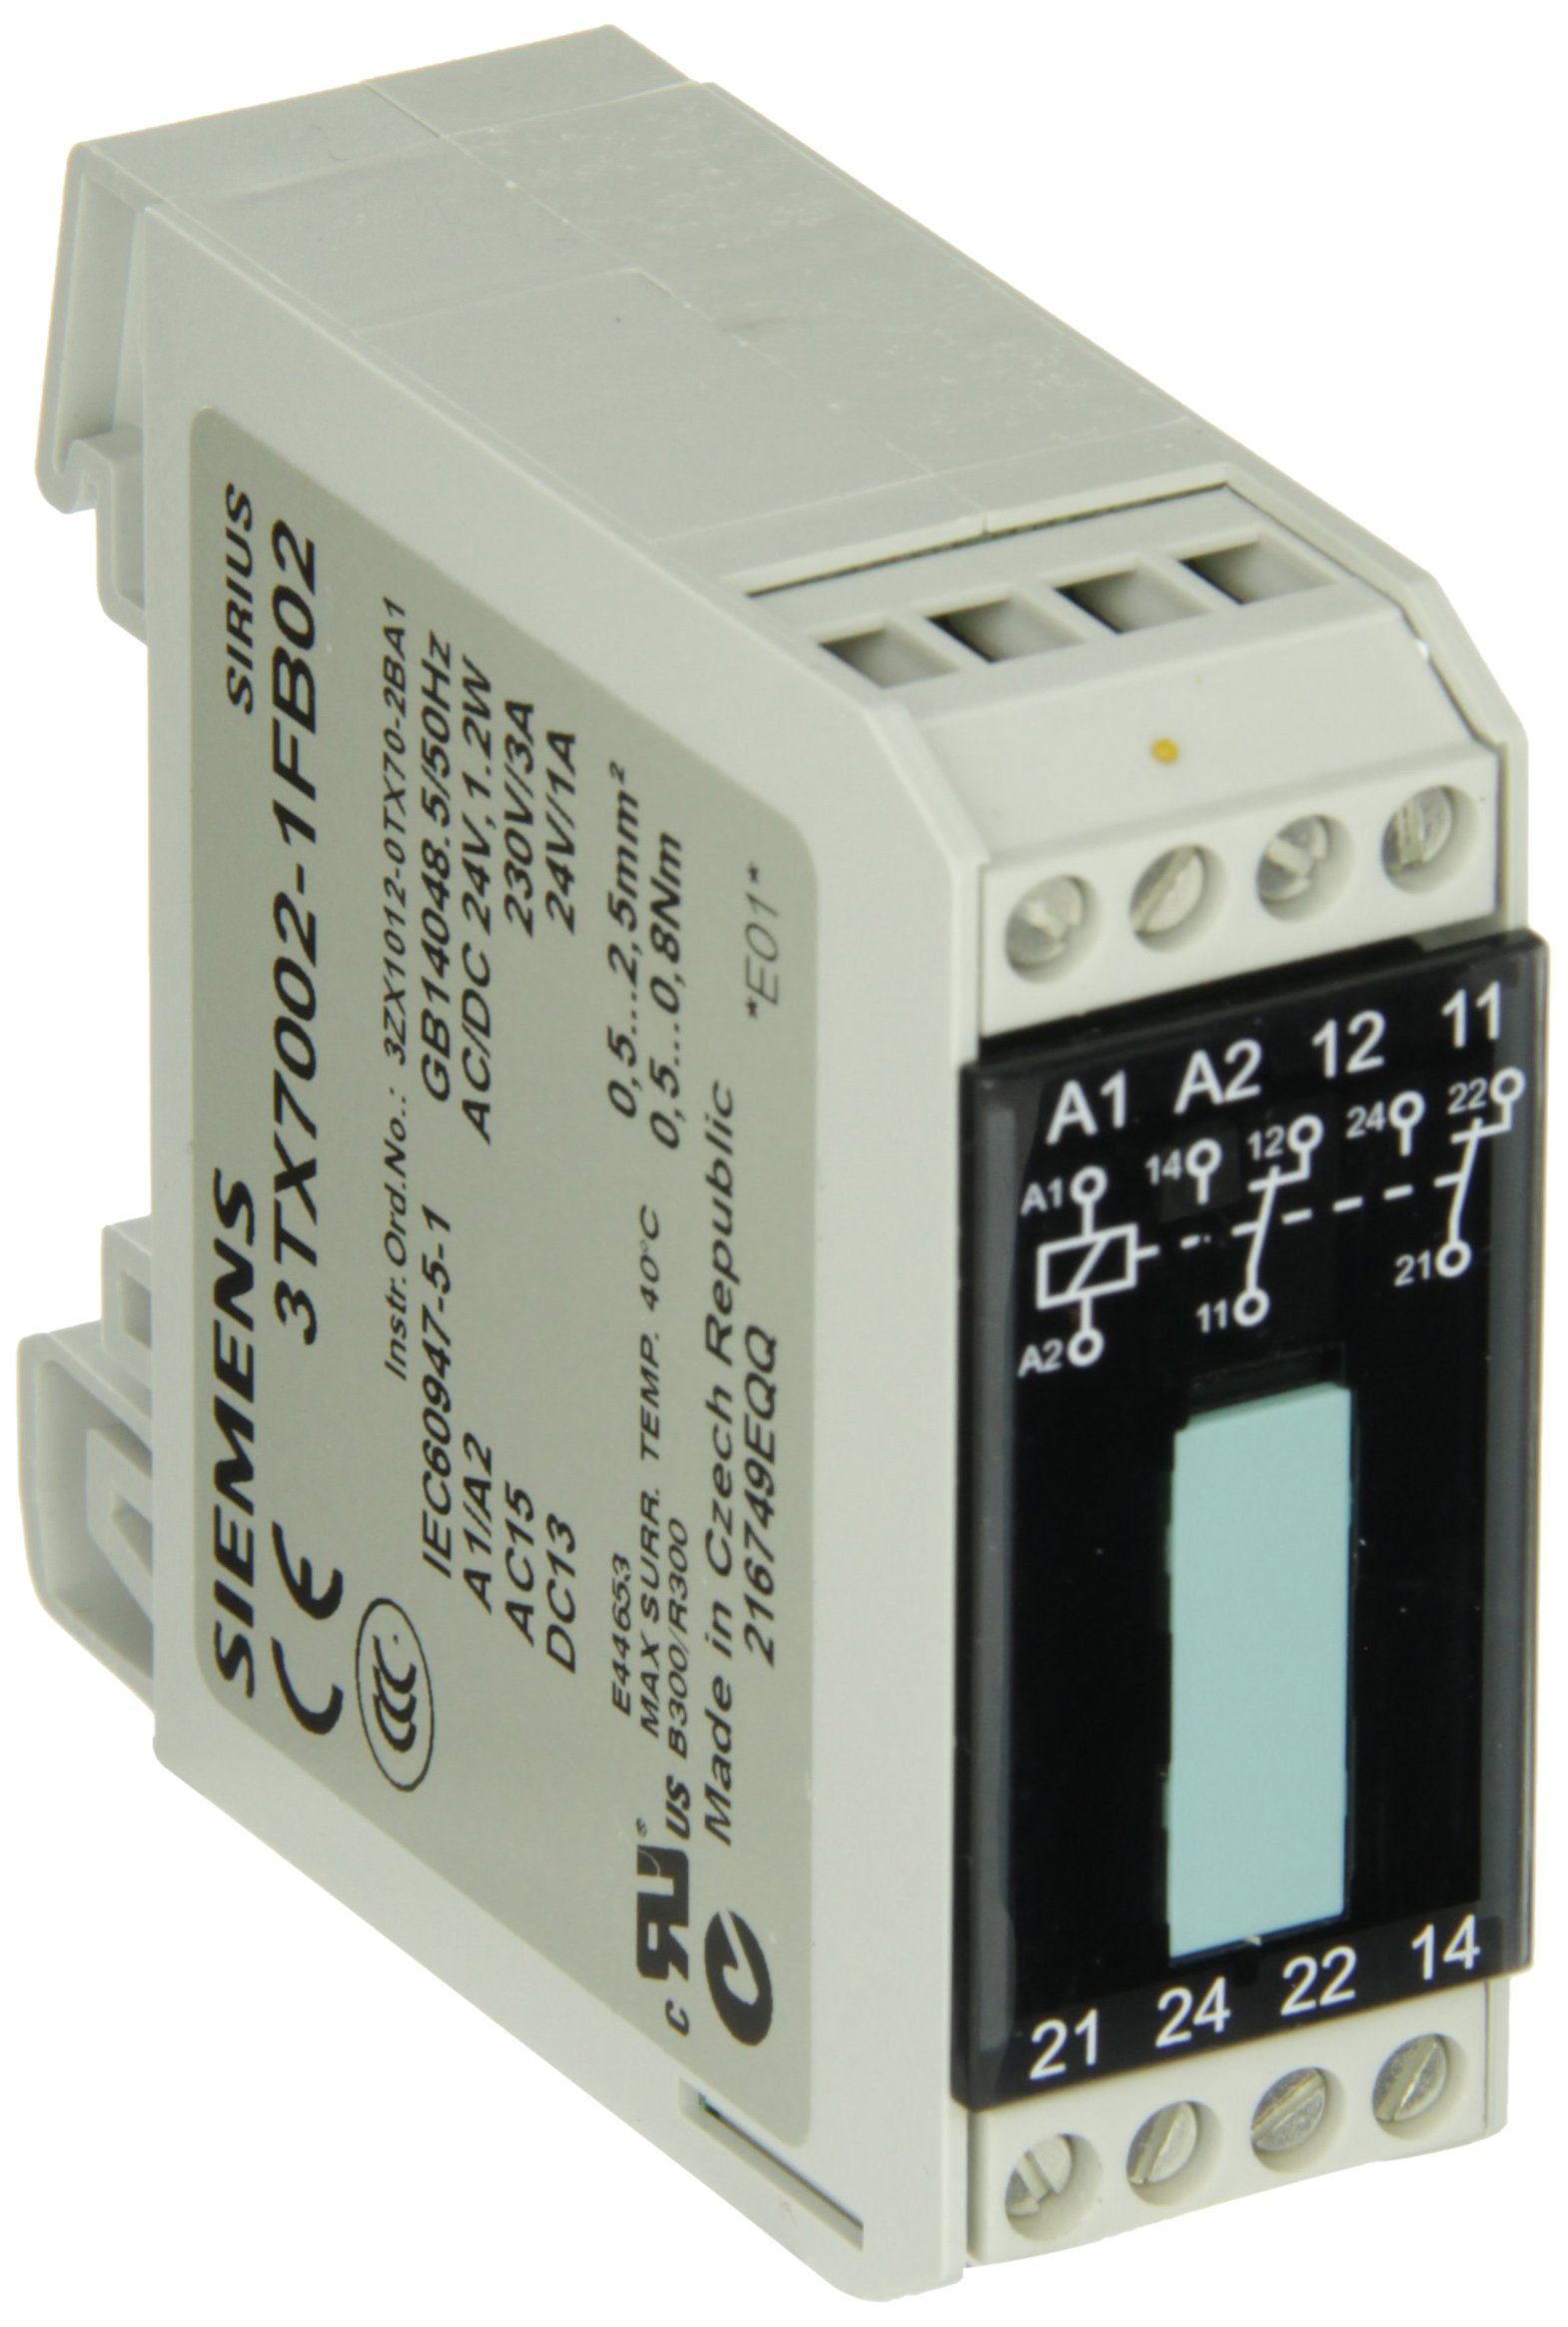 Siemens 3TX7002-1FB02 Interface Relay, Narrow Design, Screw Terminal, For Low Heights Between Tiers, Output Interface With Relay Output, Hard Gold Plated Contacts, 2 CO Contact, 22.5mm Width, 24VAC/DC Control Supply Voltage